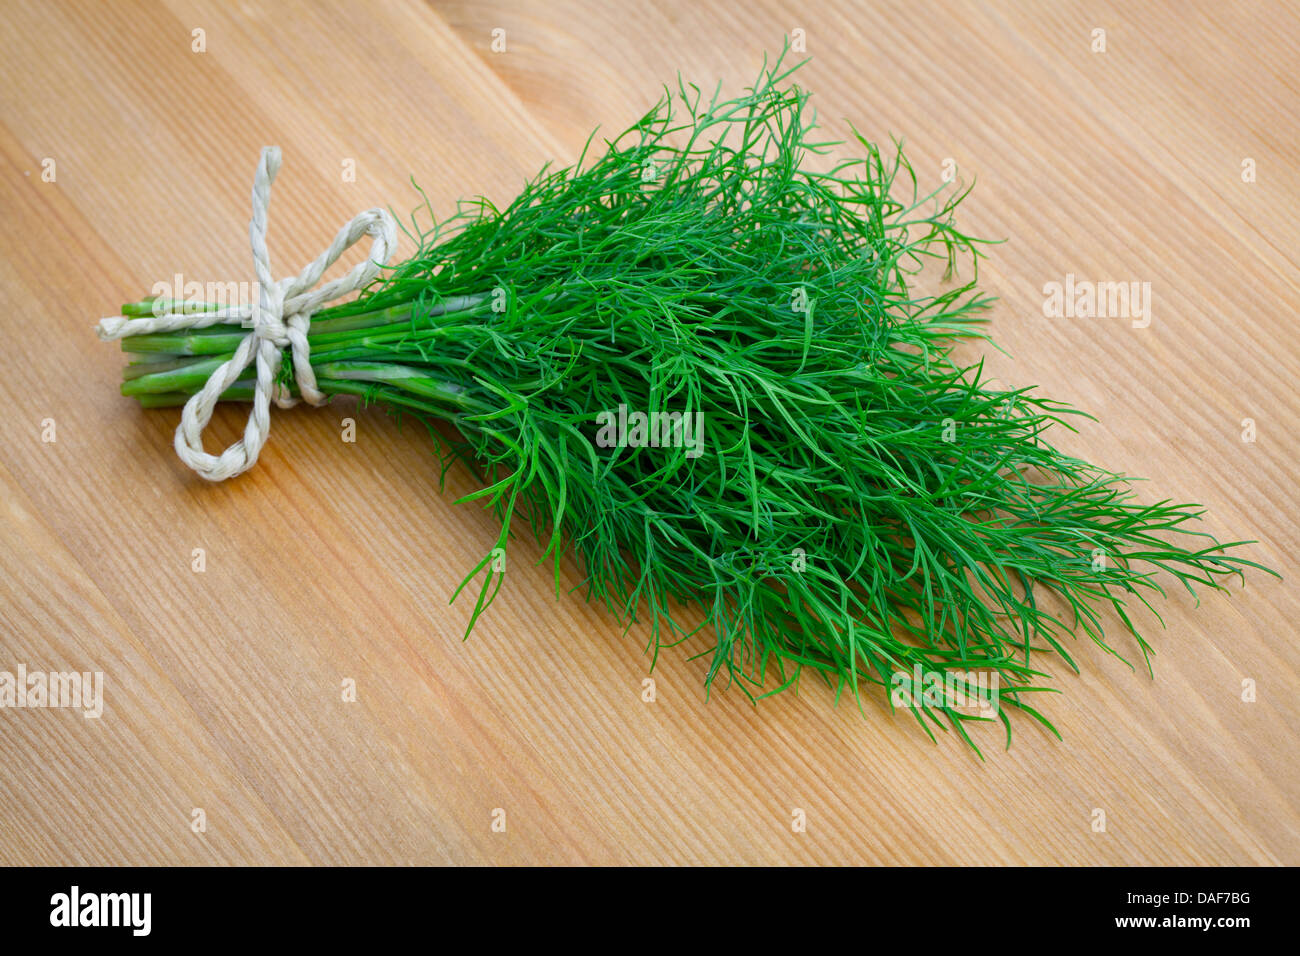 bunch fresh dill herb on wooden background - Stock Image